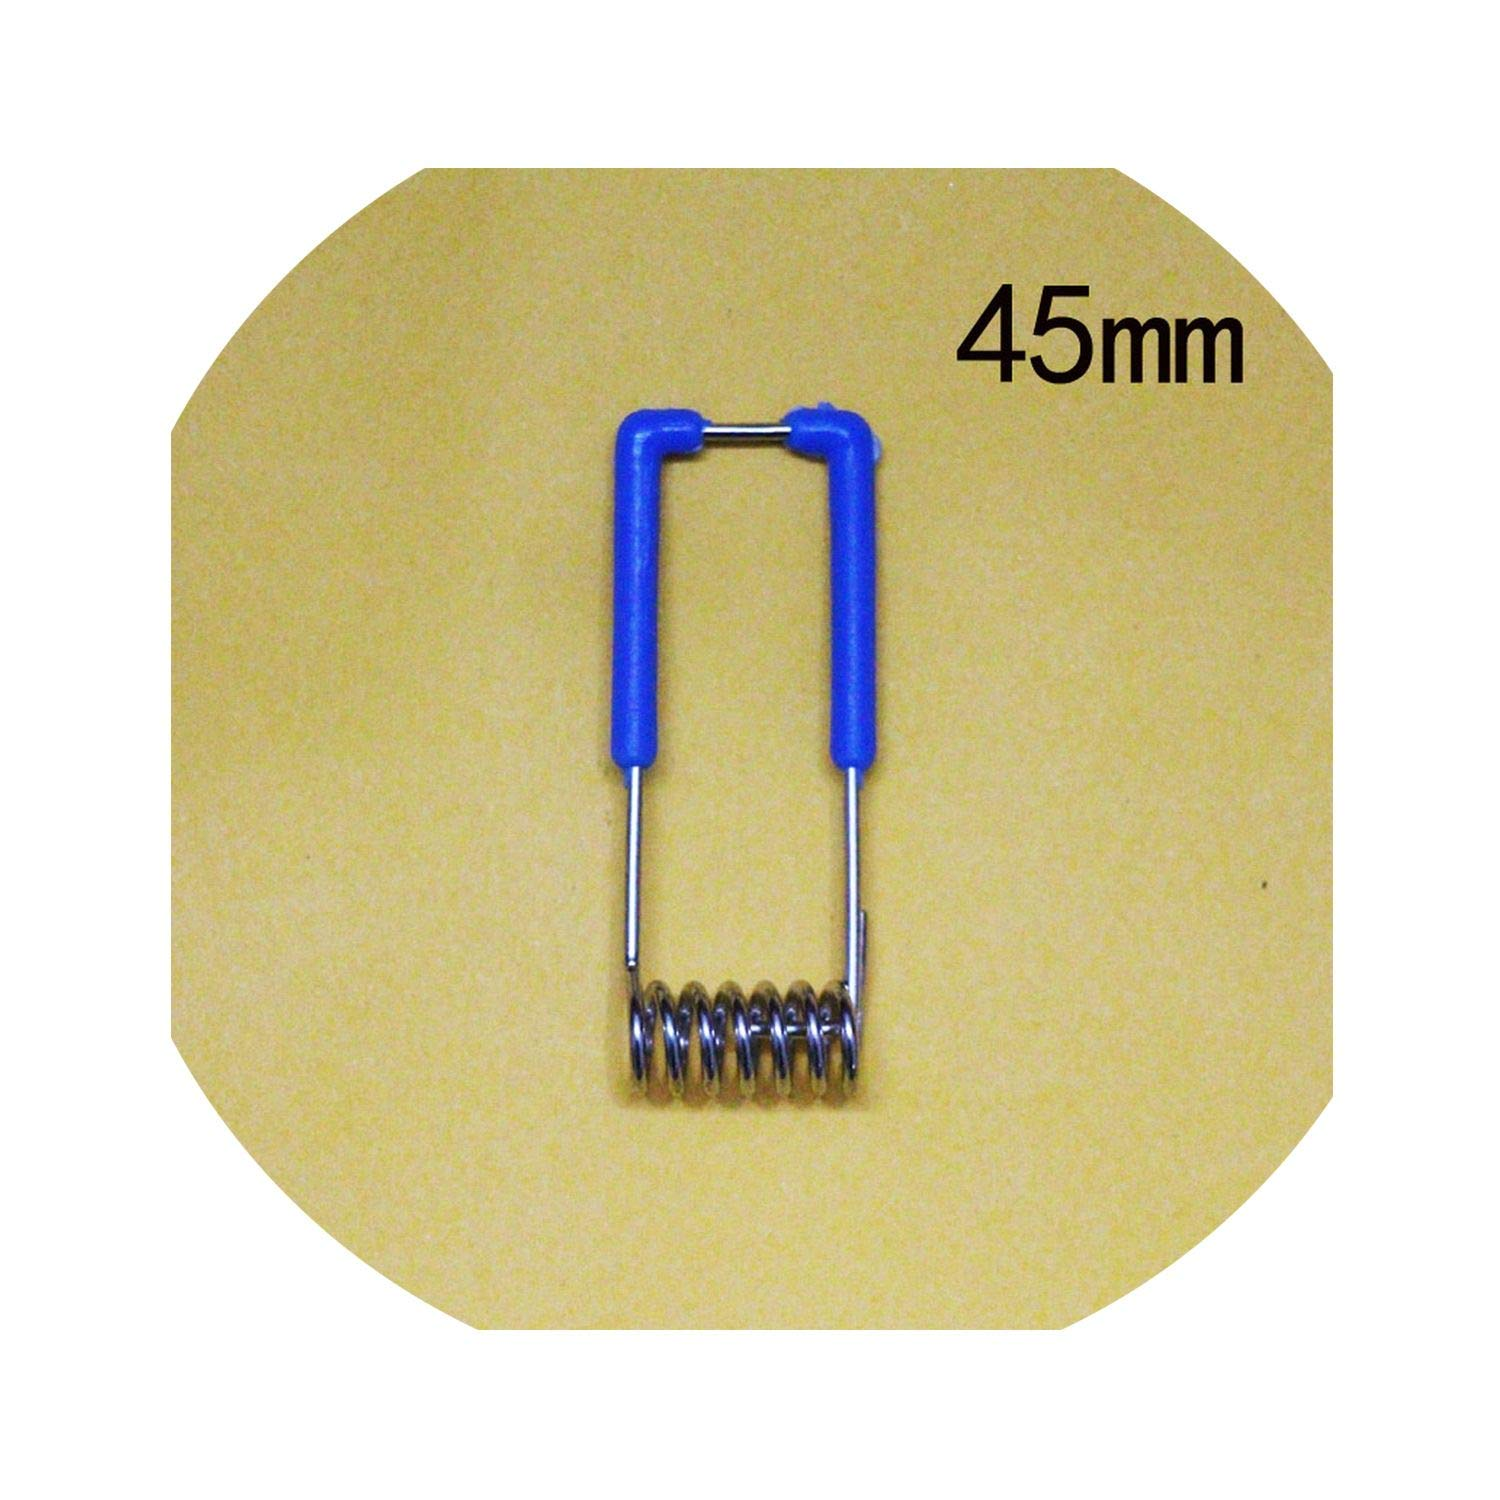 500 Pcs/Lot,45Mm Fixed Spring Clip For Ceiling Lamp, Spotlights, Downlight,As Picture